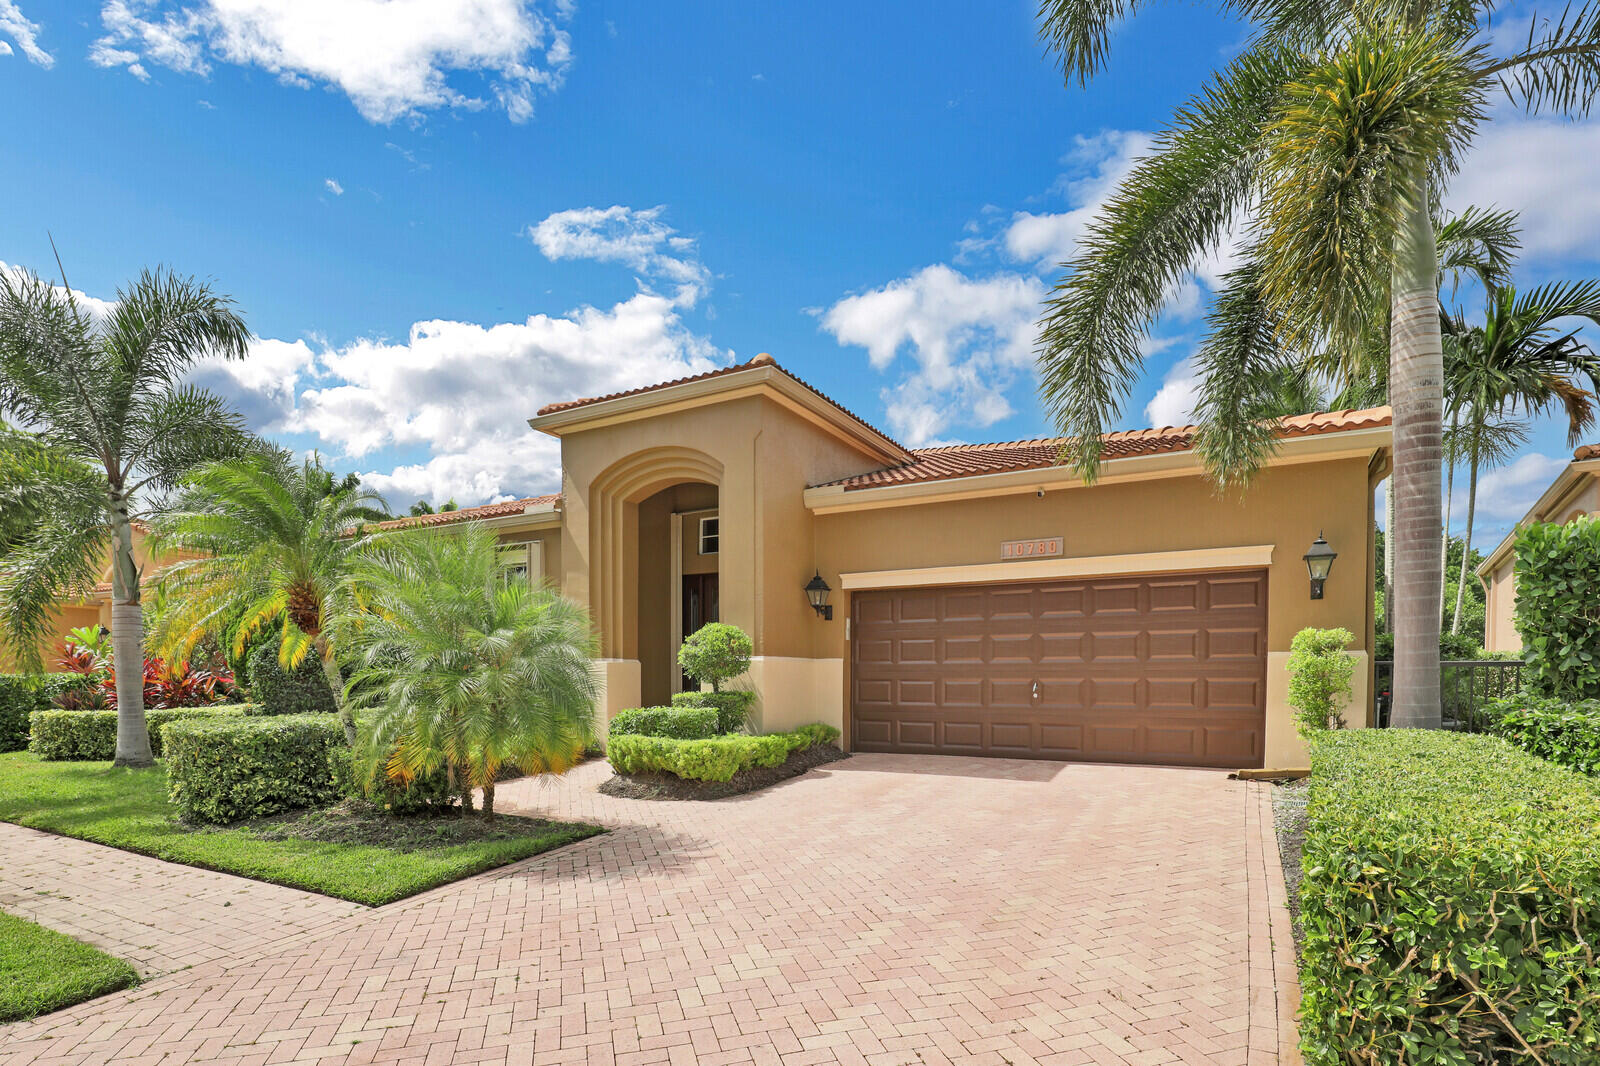 Home for sale in Ibis Golf & Country Club - Cascaya West Palm Beach Florida